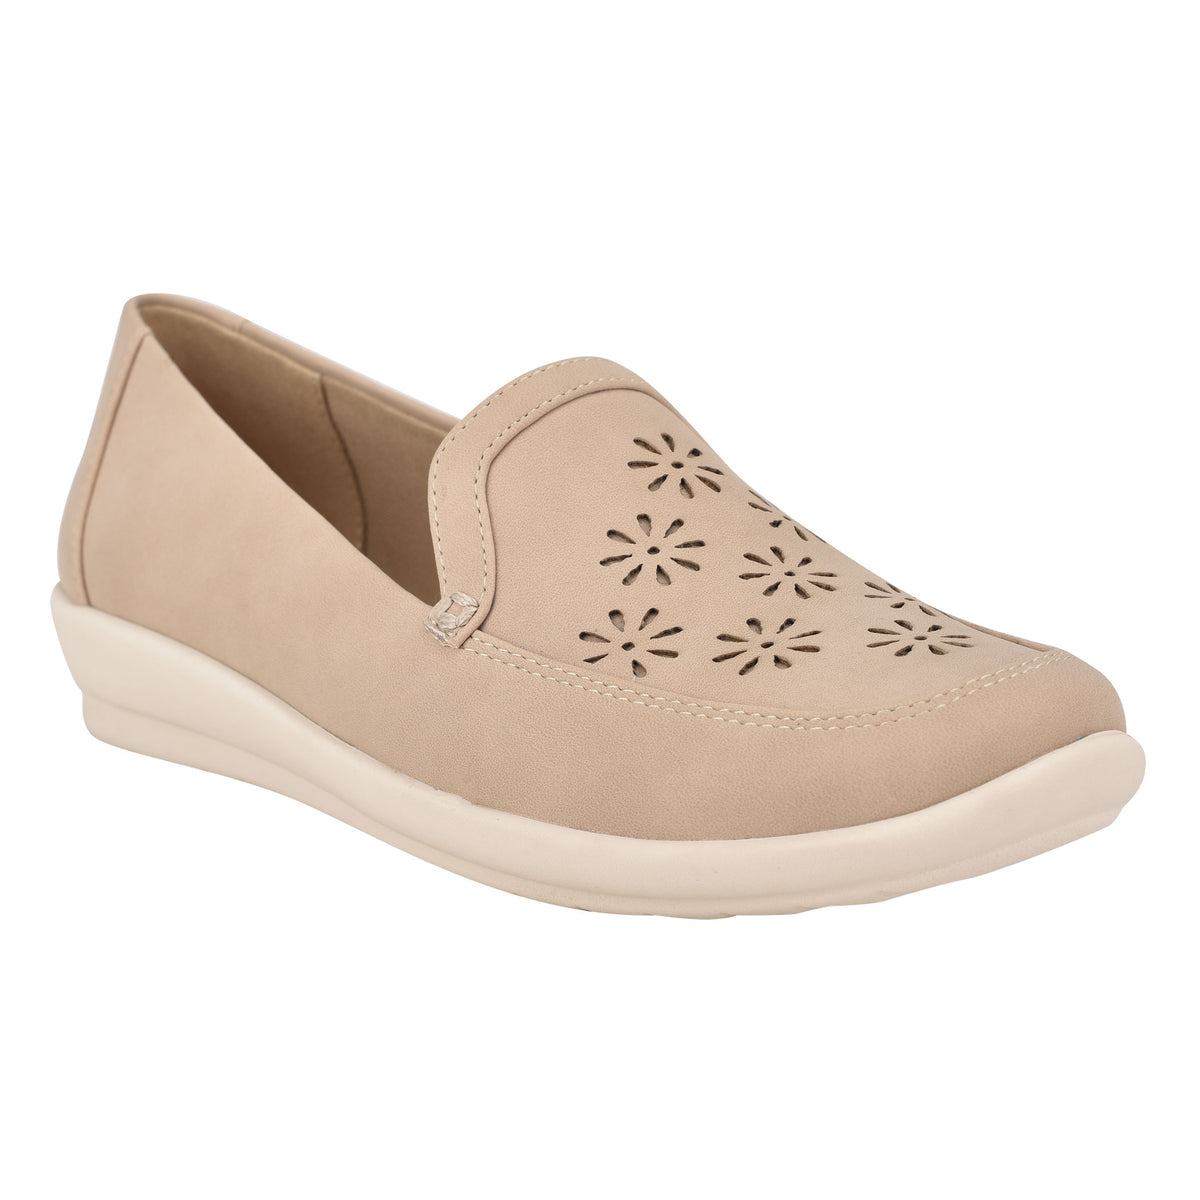 Abi Slip On Casual Shoes